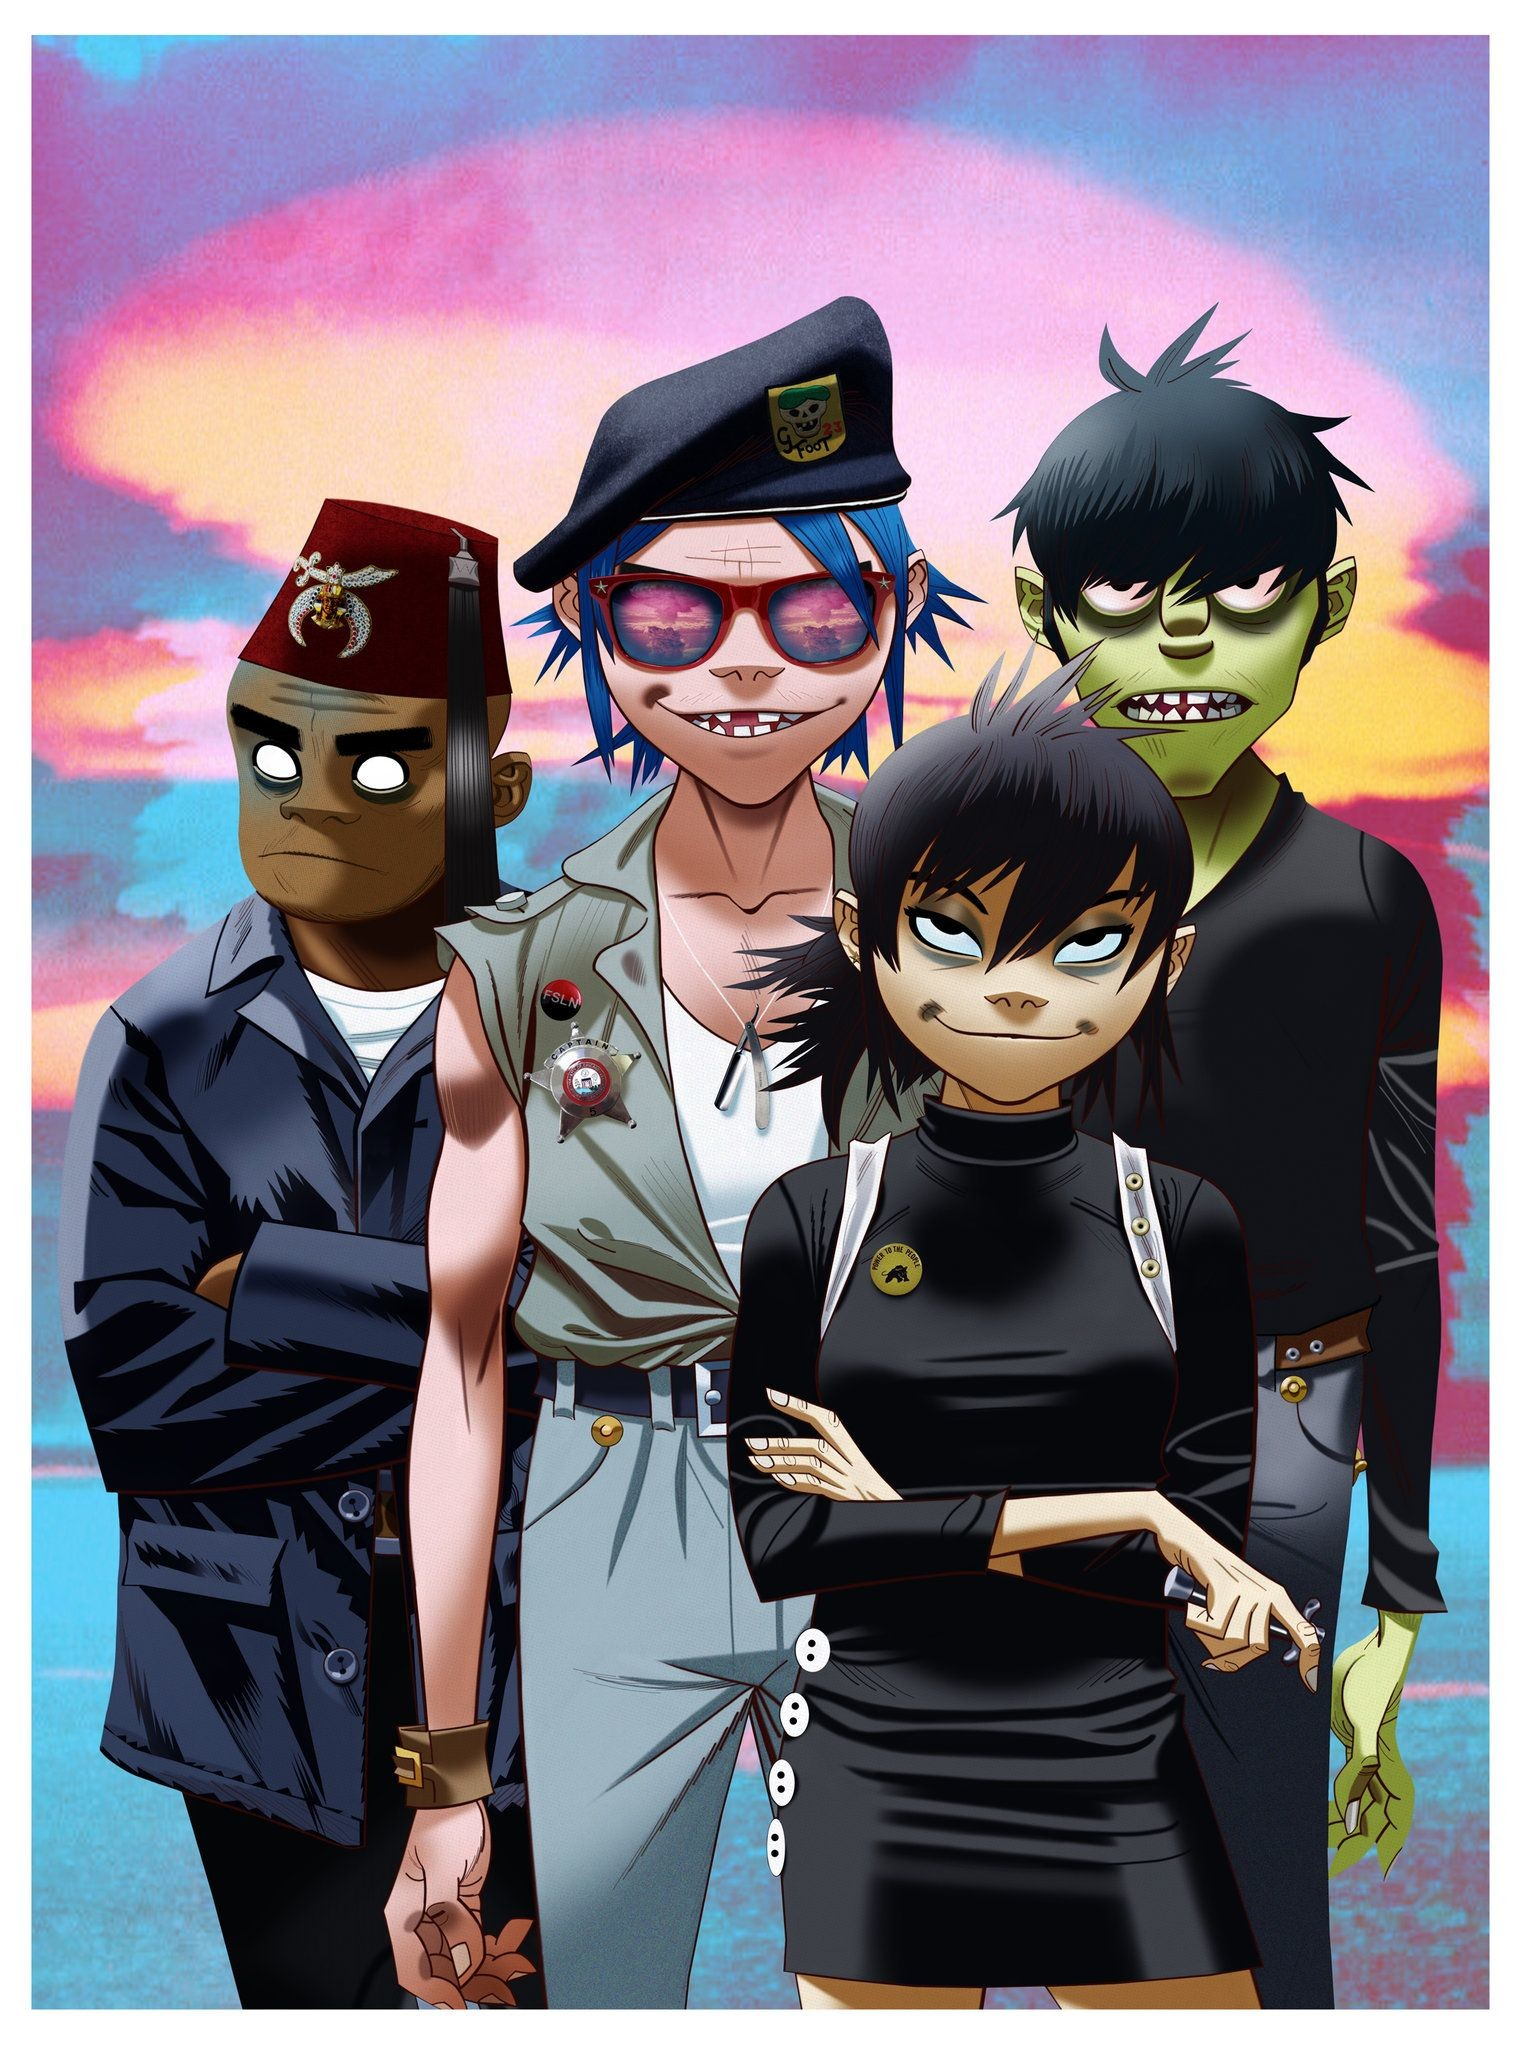 Gorillaz Iphone Wallpaper 81 Images